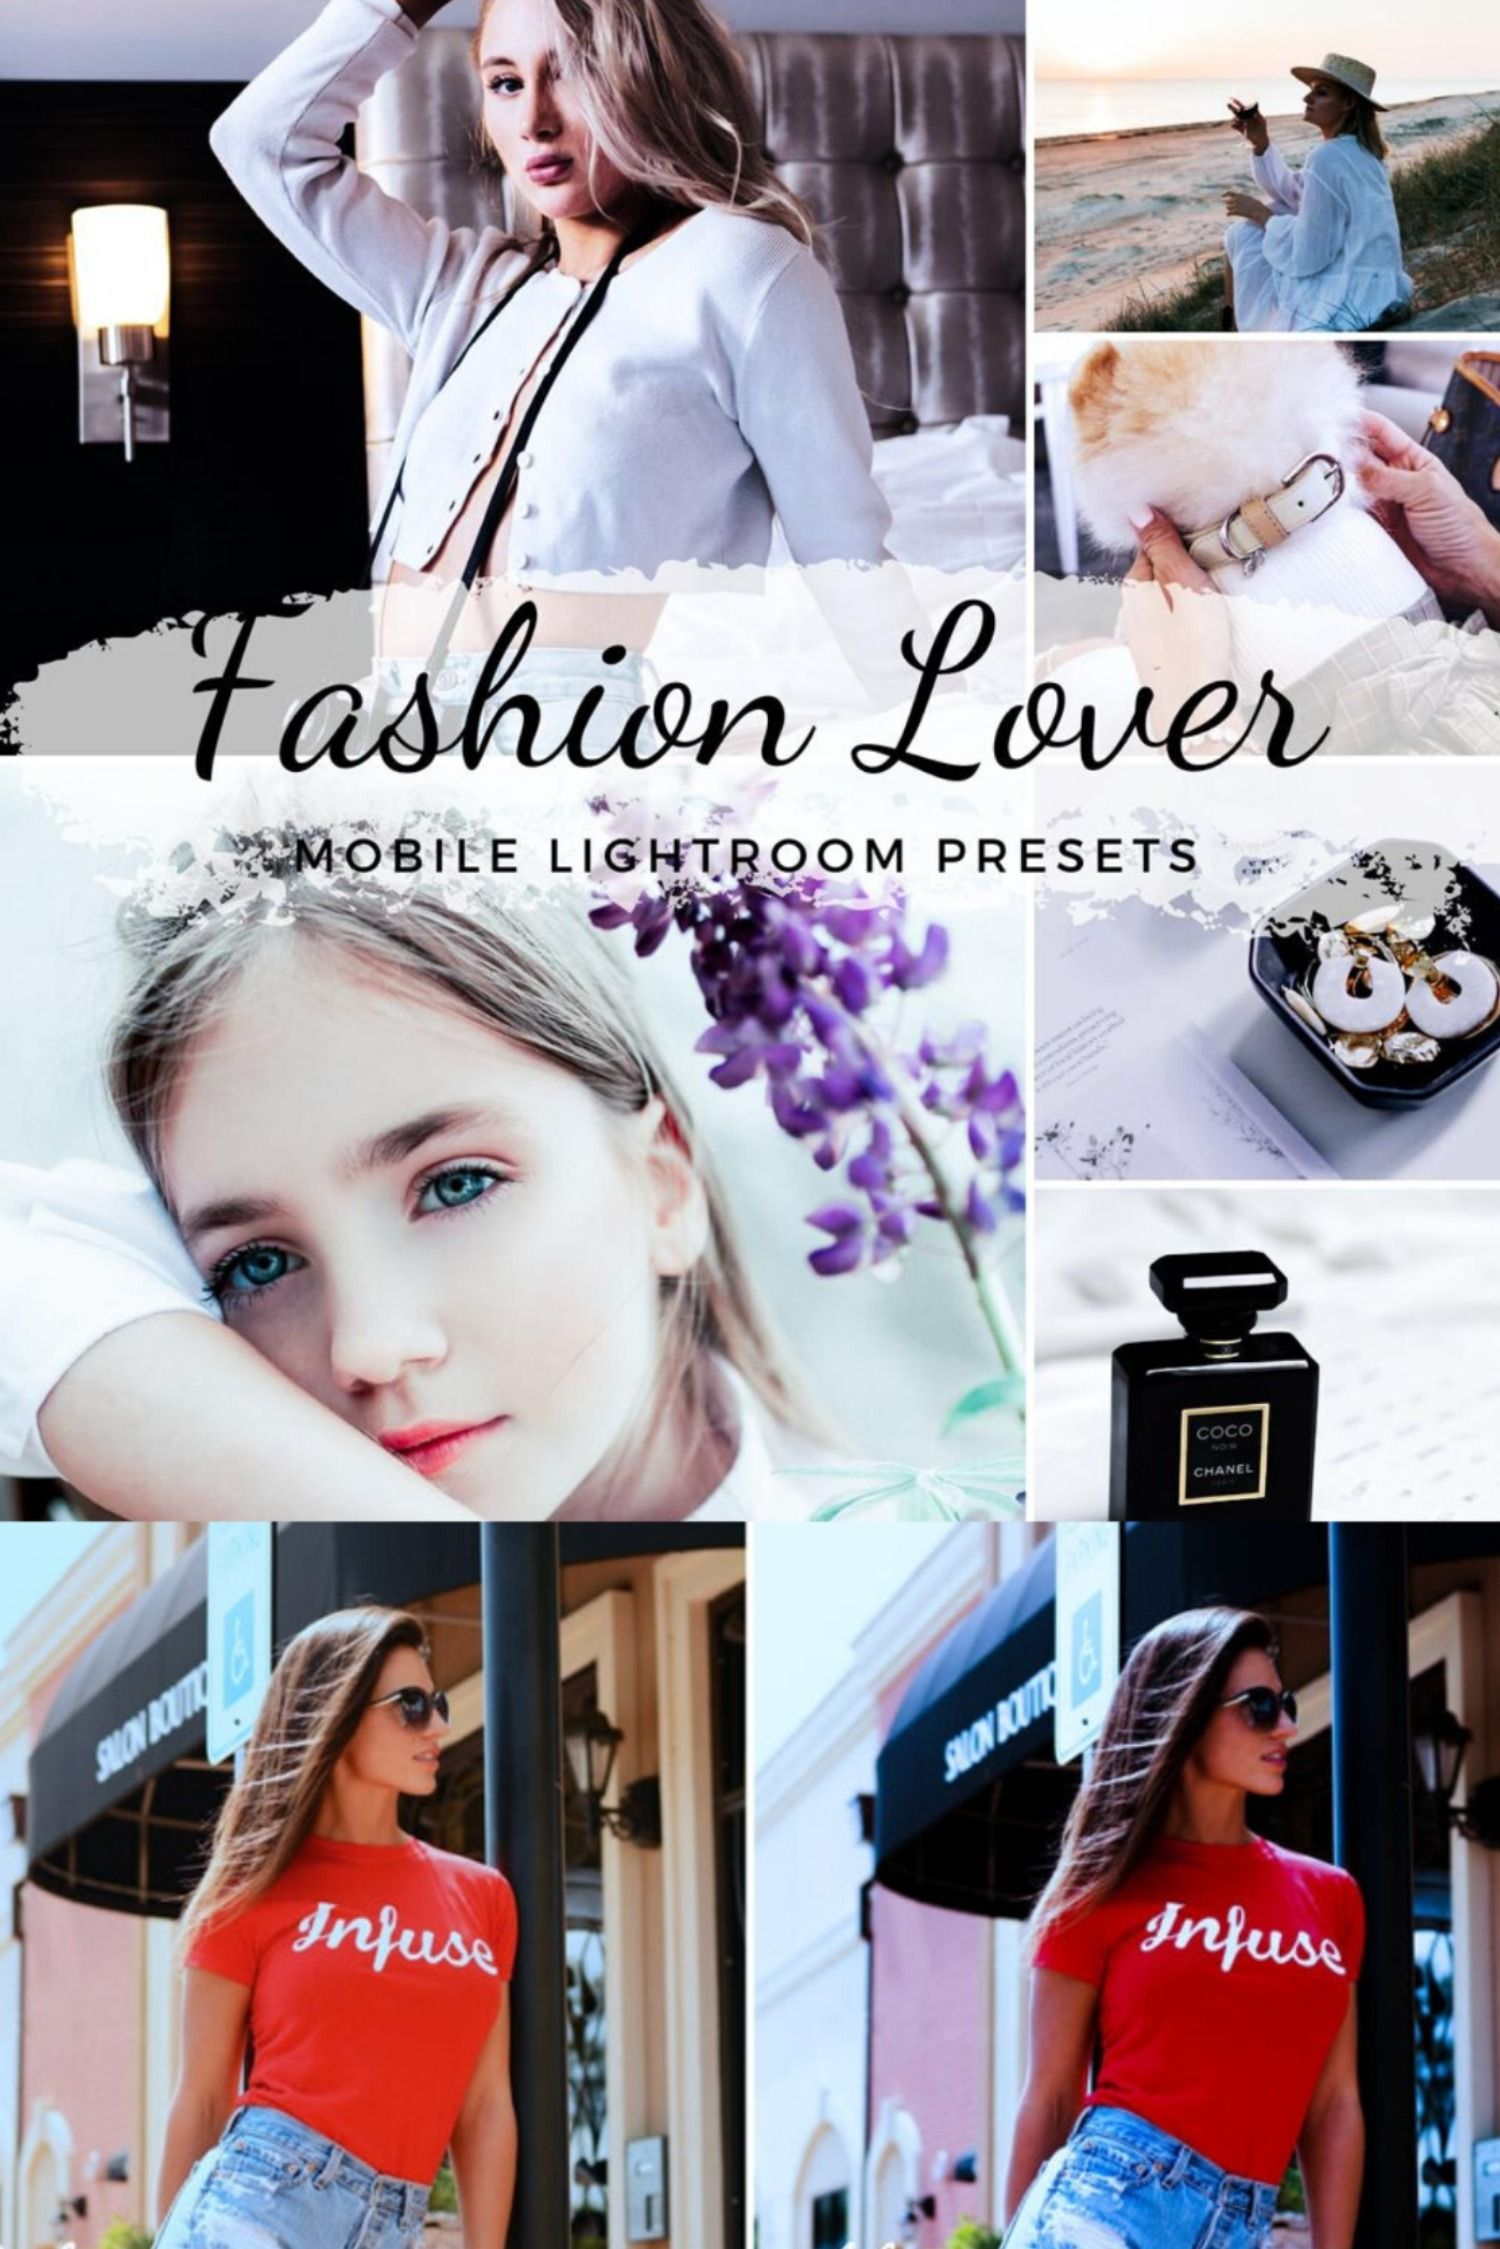 Mobile Lightroom Presets / Fashiongram Presets / Fashionable Bright Presets / Fashion Style Presets / Fashion Blogger / Instagram Filter  ❤️GET 3 & PAY FOR 2: add 3 presets to your cart, use PROMO code: CLAUDI3 and pay just for 2 ❤️❤️GET 4 & PAY FOR 3: add 4 presets to your cart, use PROMO code: CLAUDI4 and pay just for 3